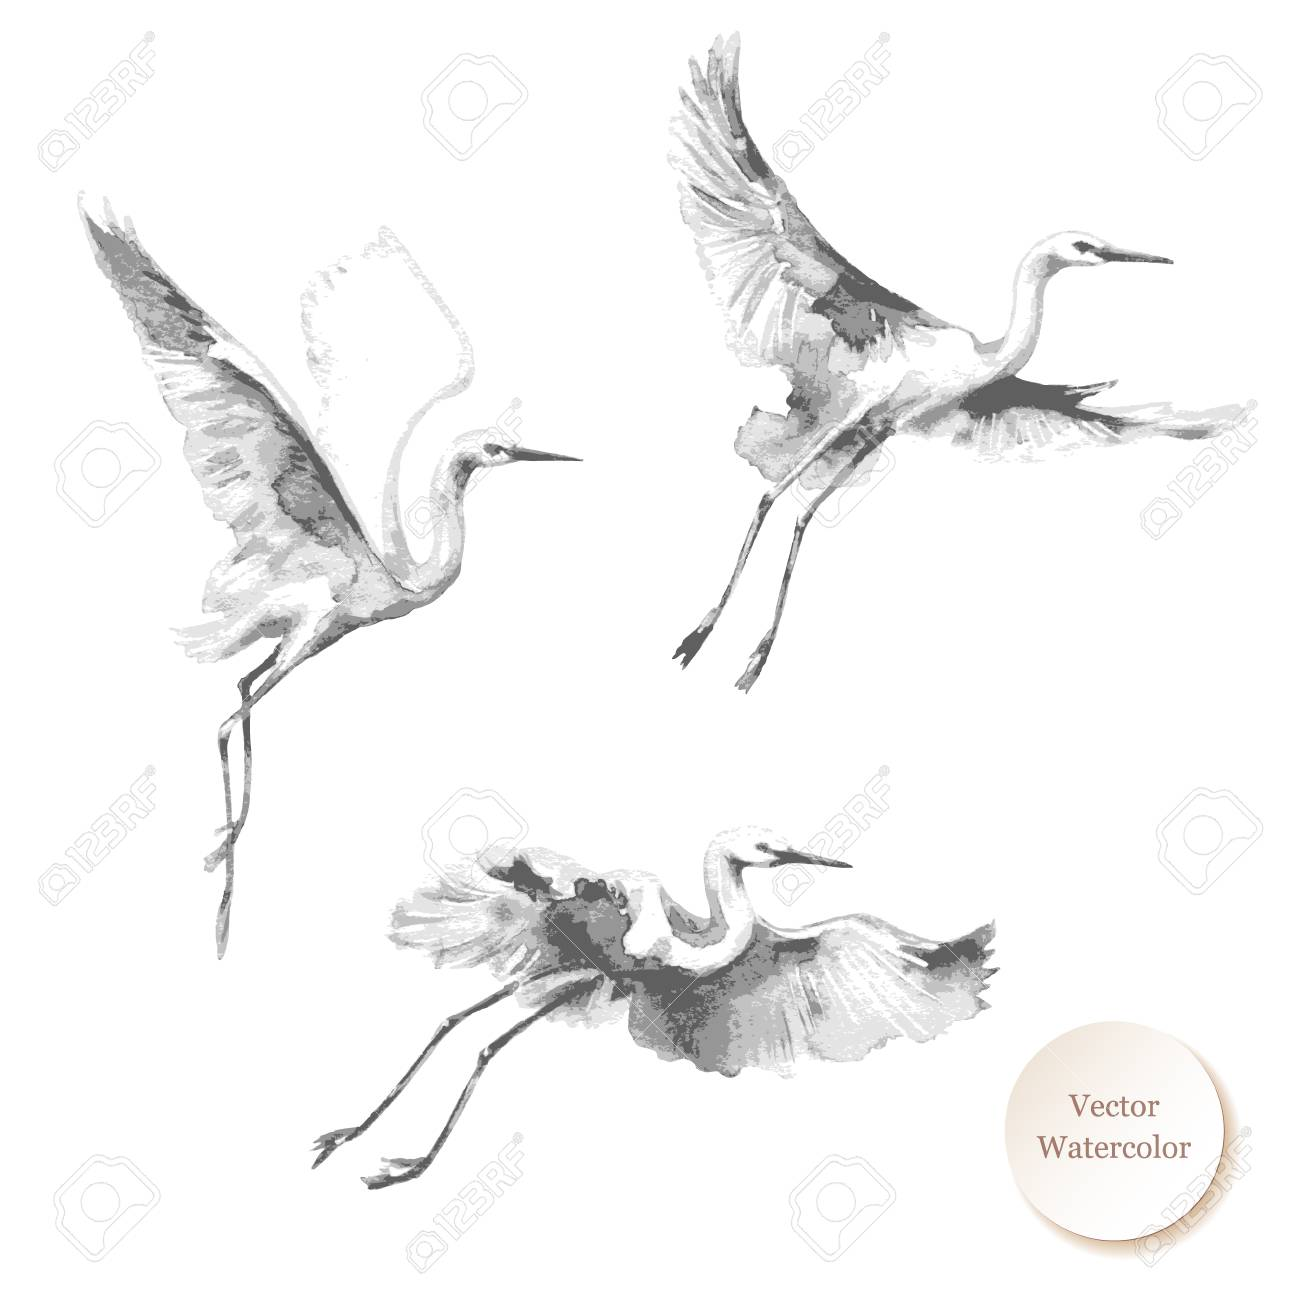 Watercolor painting. Hand drawn illustration. Flying storks isolated on white background. Bird flight monochrome vector sketch. - 93279164